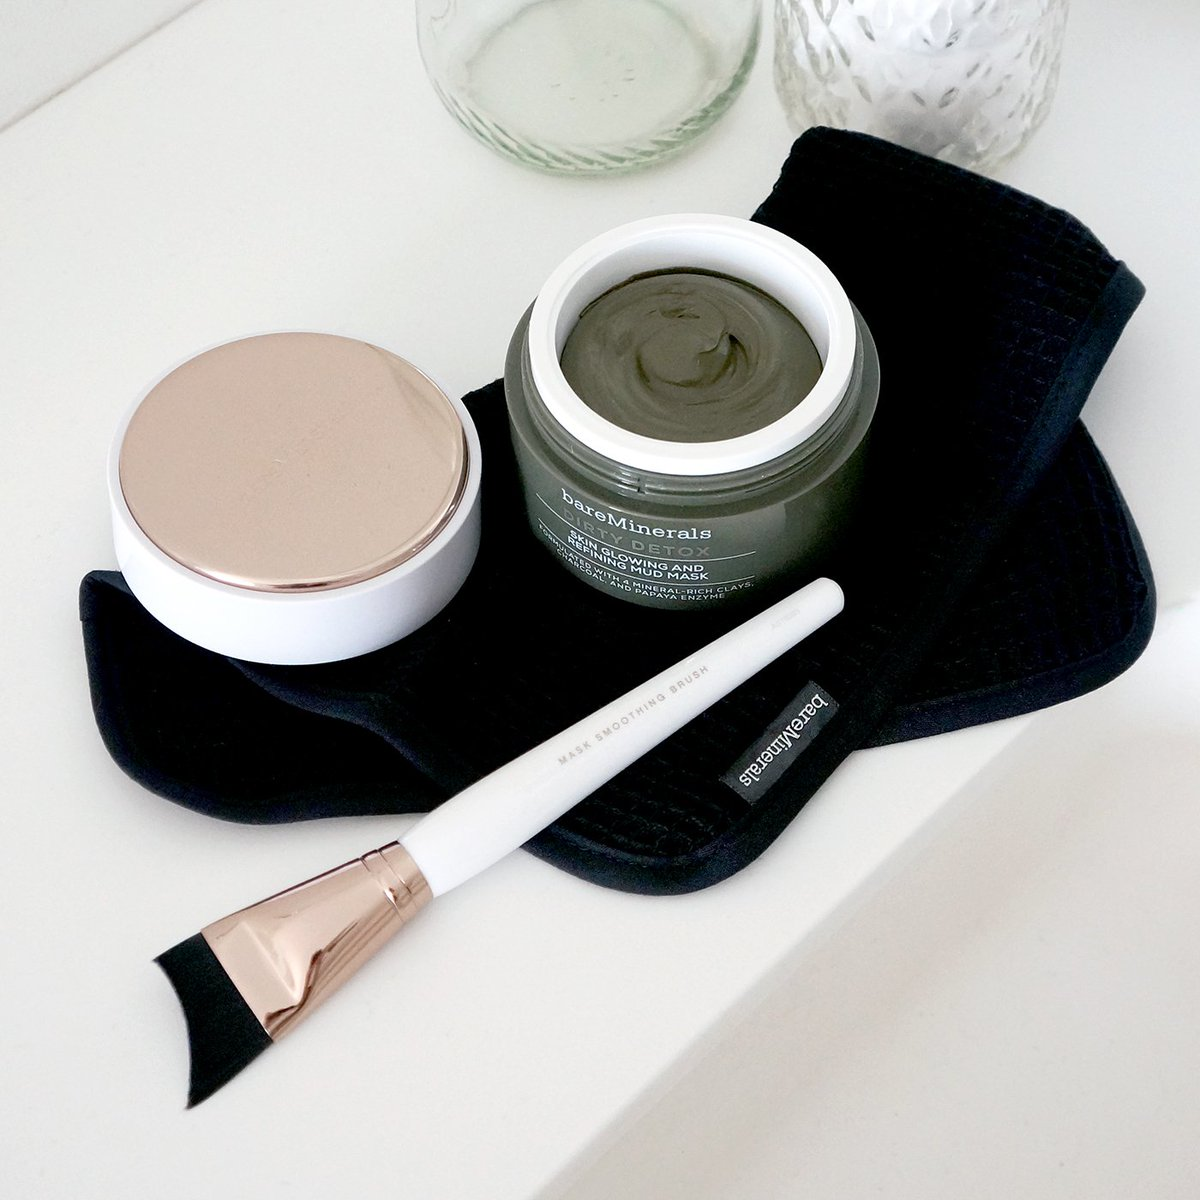 Dirty Detox Skin Glowing & Refining Mud Mask by bareMinerals #19